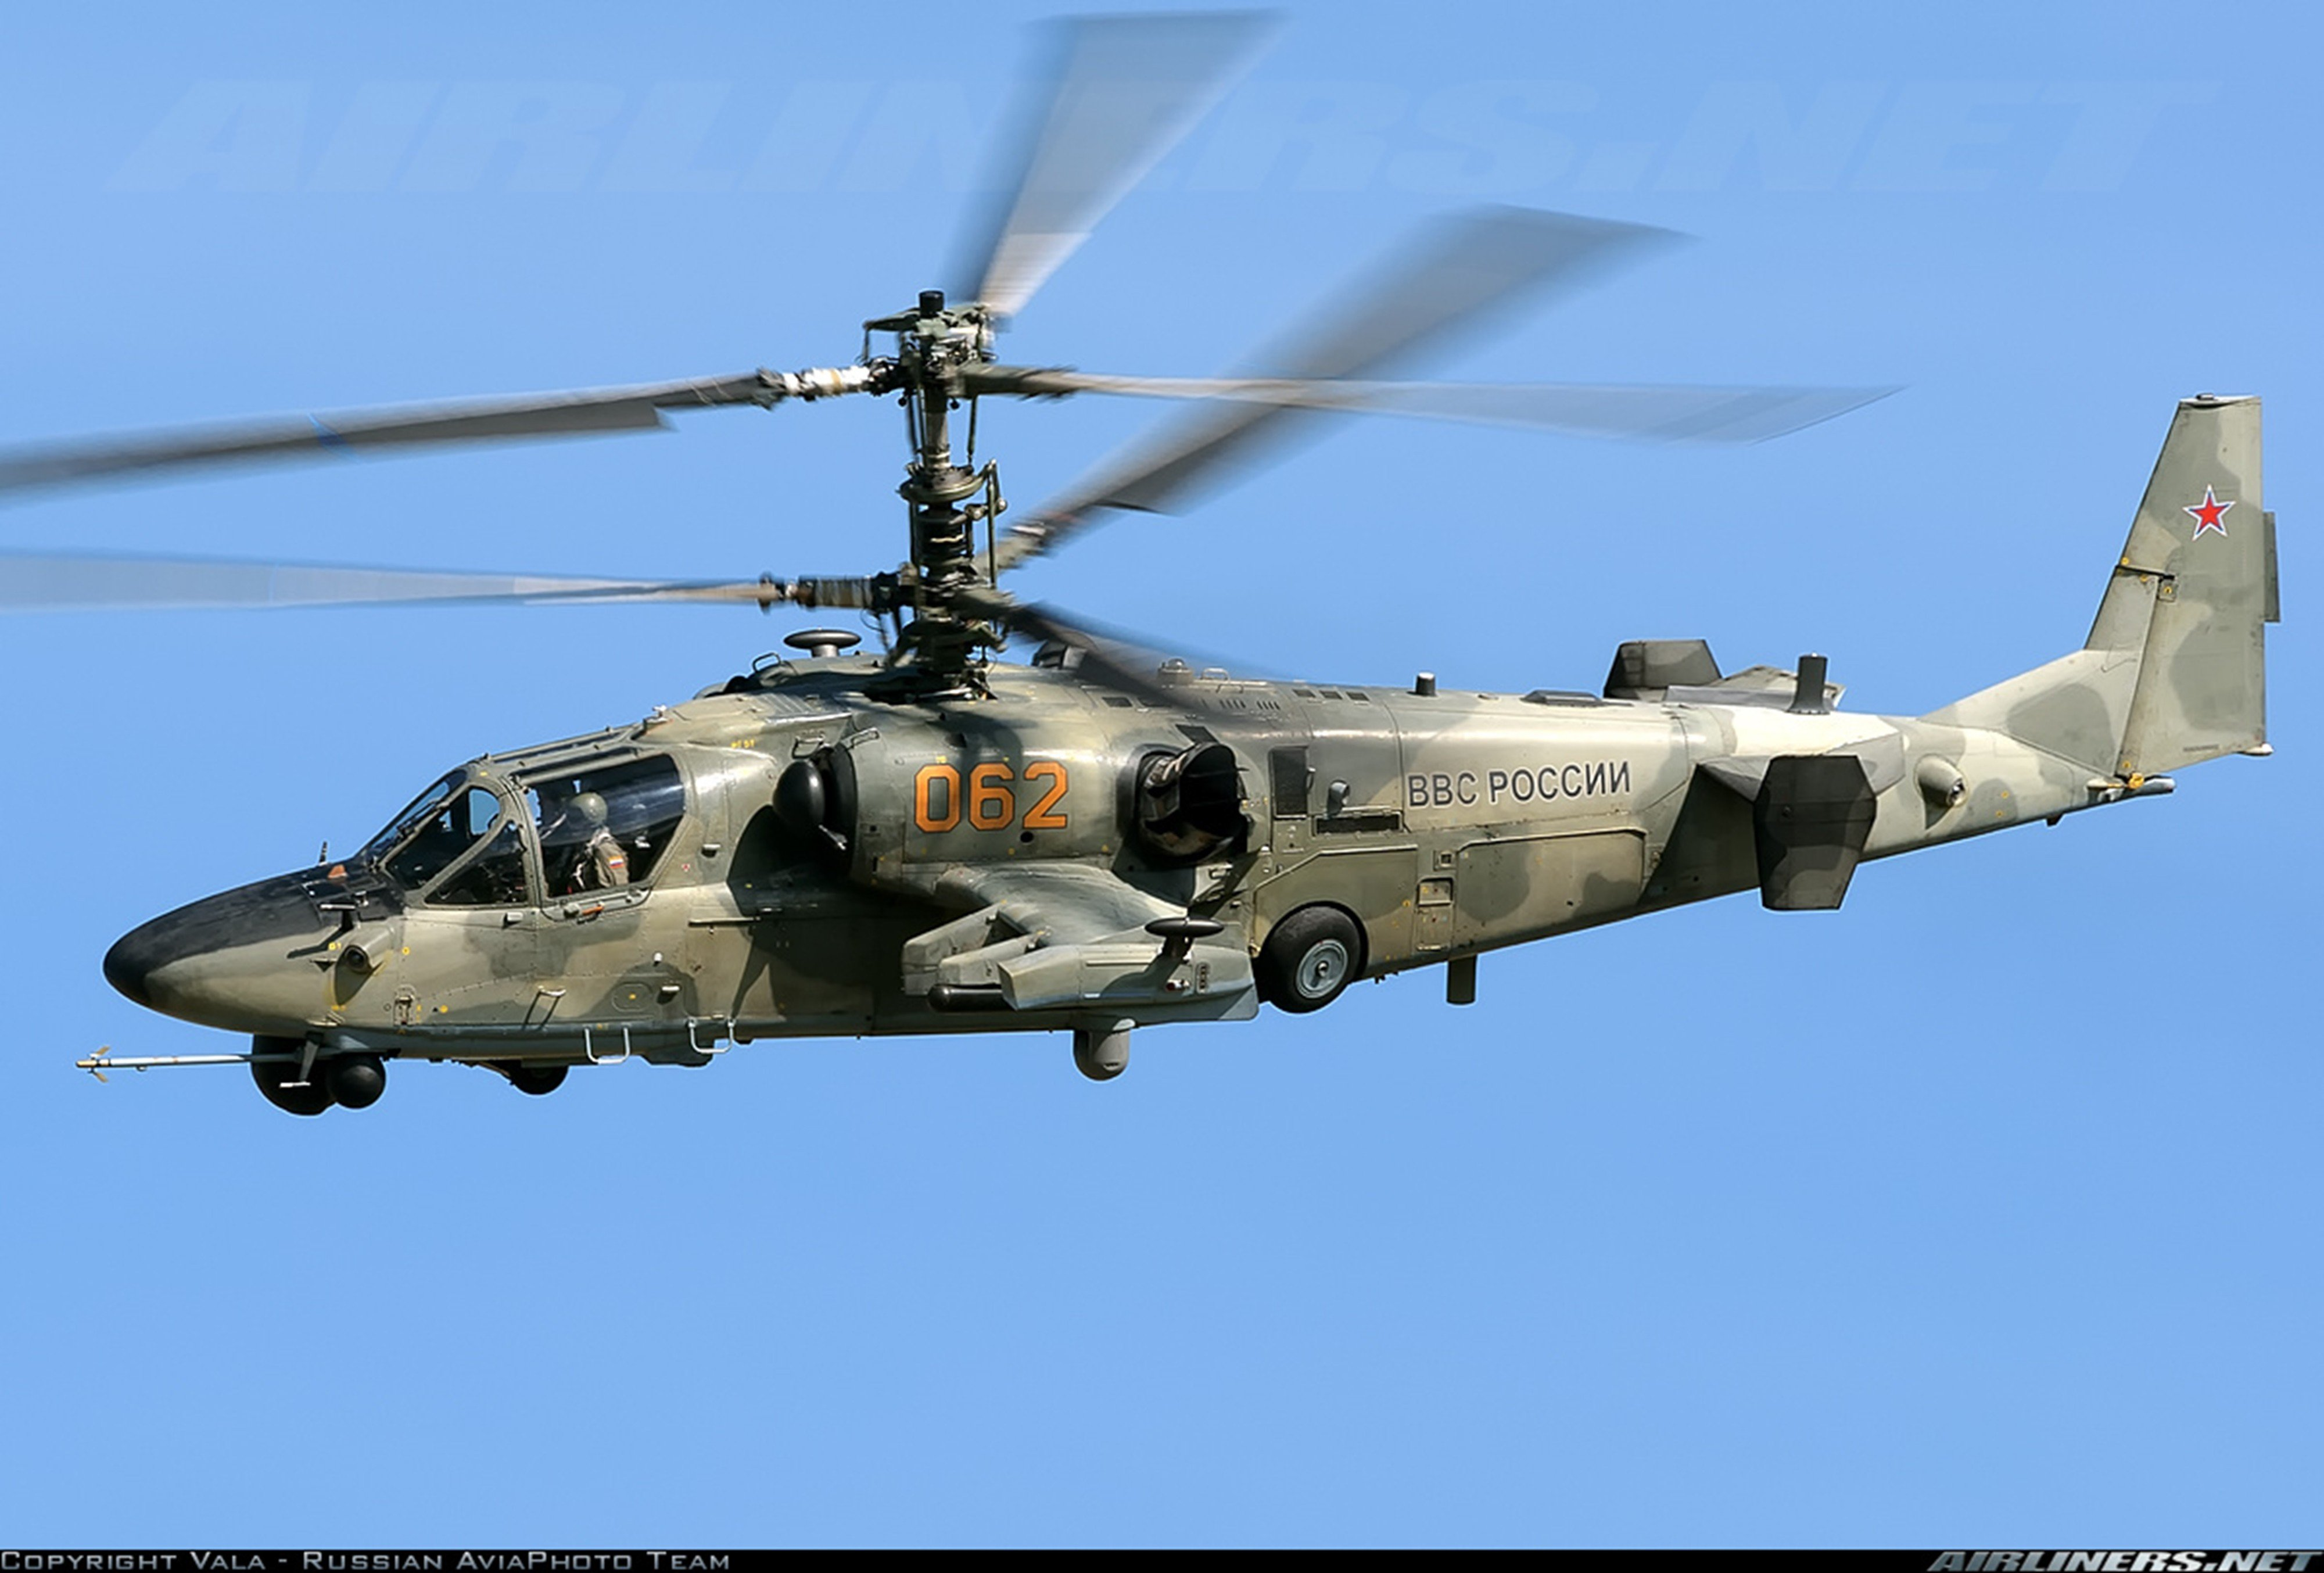 russian red star Russia helicopter aircraft attack military army kamov